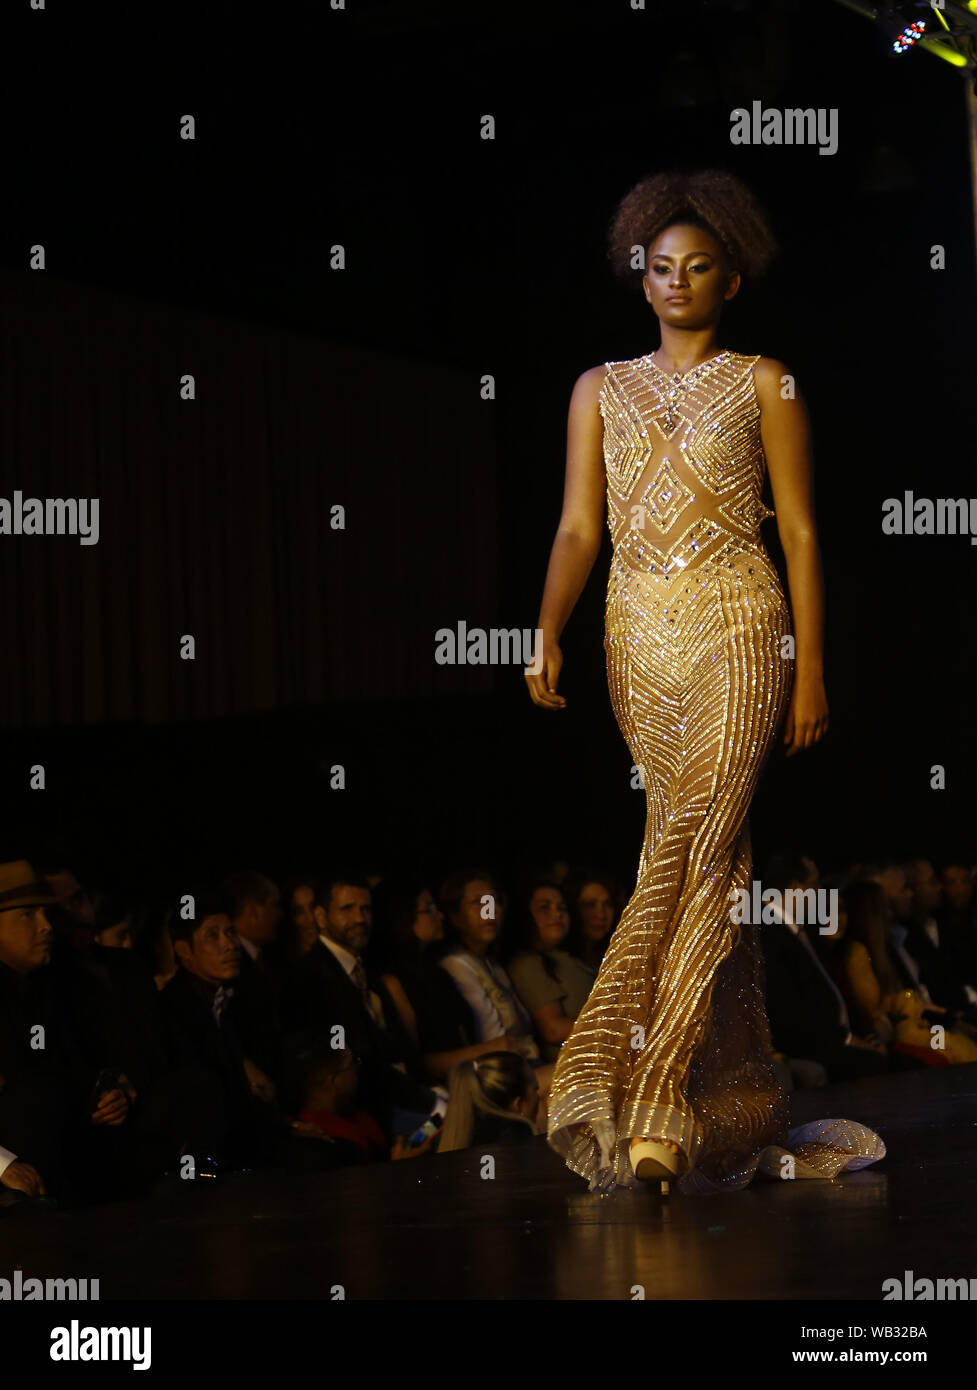 Valencia Carabobo Venezuela 22nd Aug 2019 August 23 2019 A Model Of Afro Descendant Characteristics Participates In The Fashion Show Come Together Of Fashion Designer Daniel Fabregas Who Included Among Its 150 Models